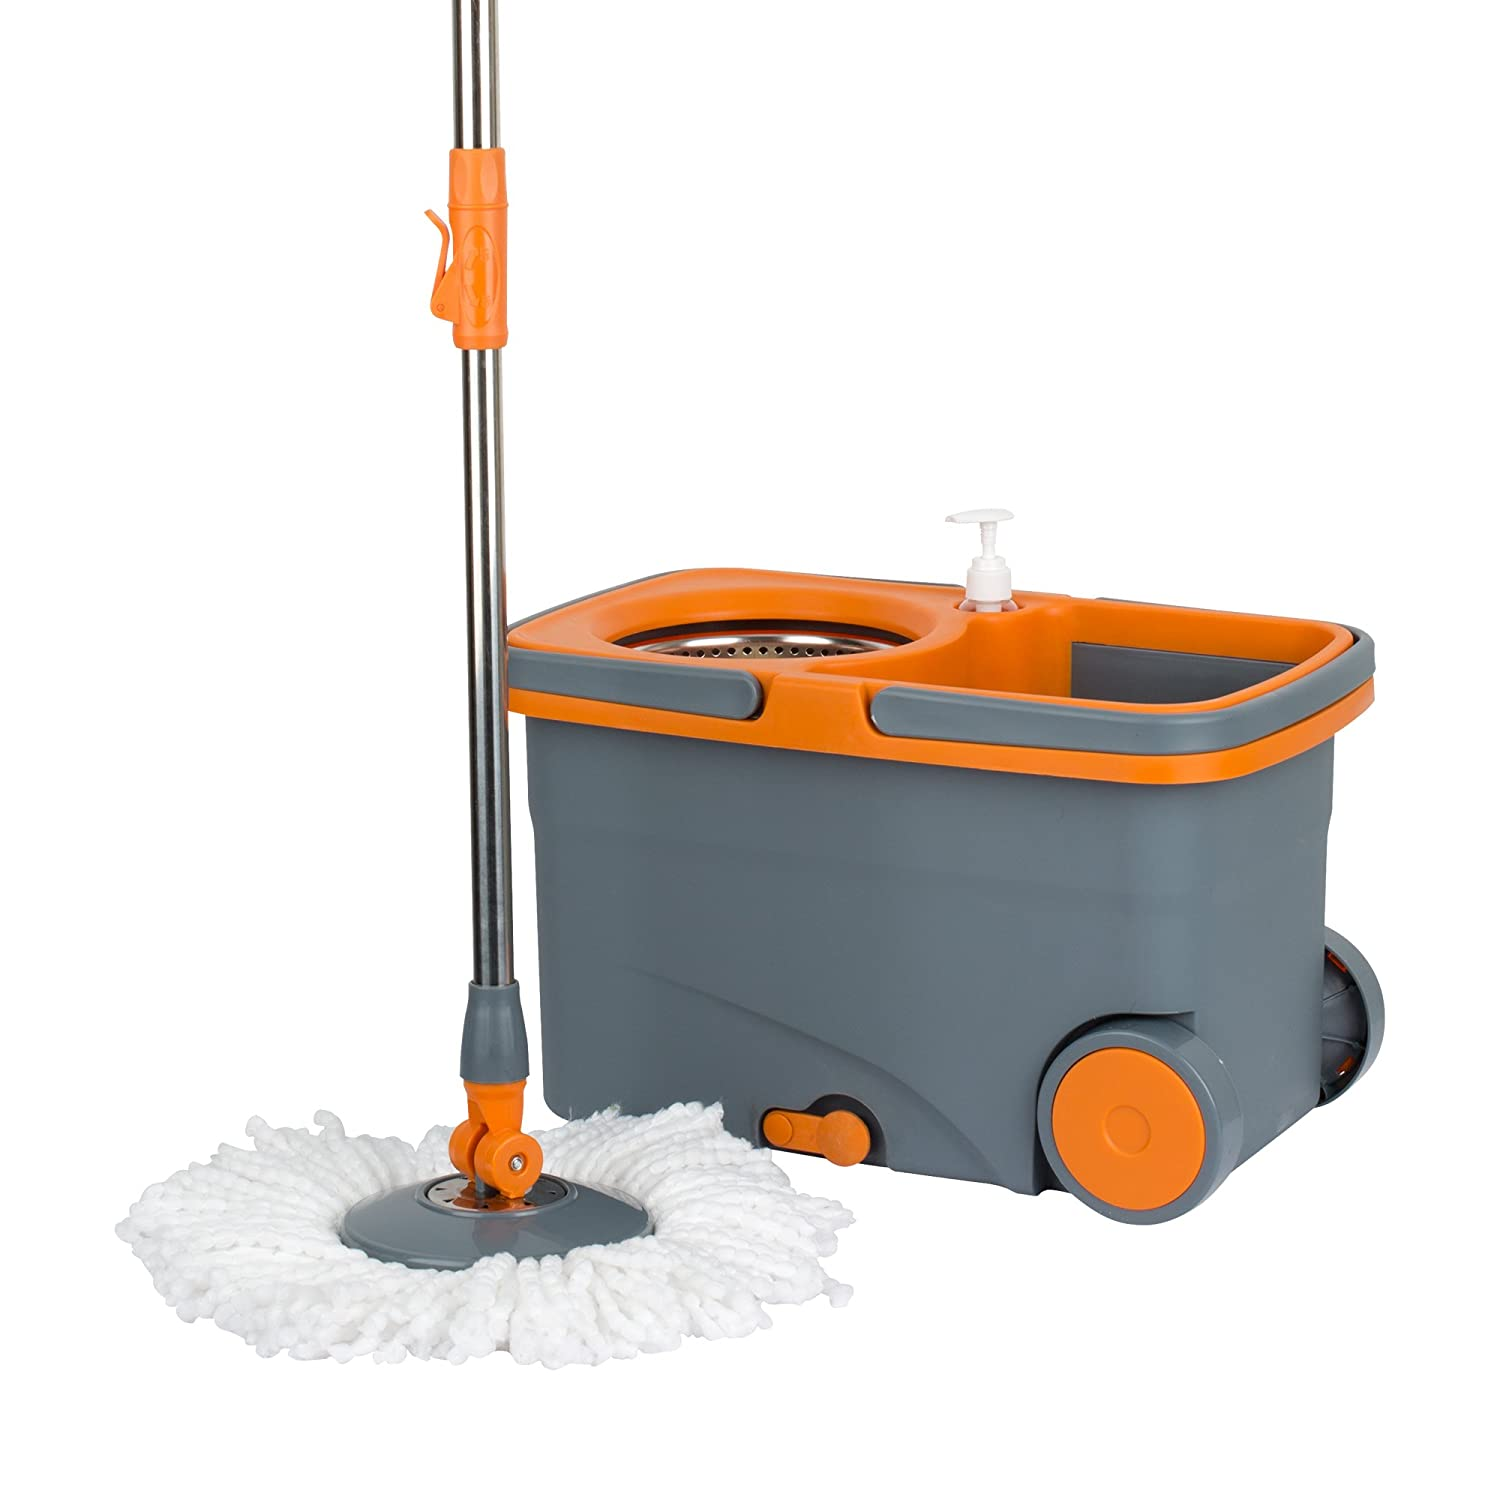 Twist and shout mop review - Amazon Com Casabella Spin Cycle Mop With Bucket Graphite Orange Home Kitchen